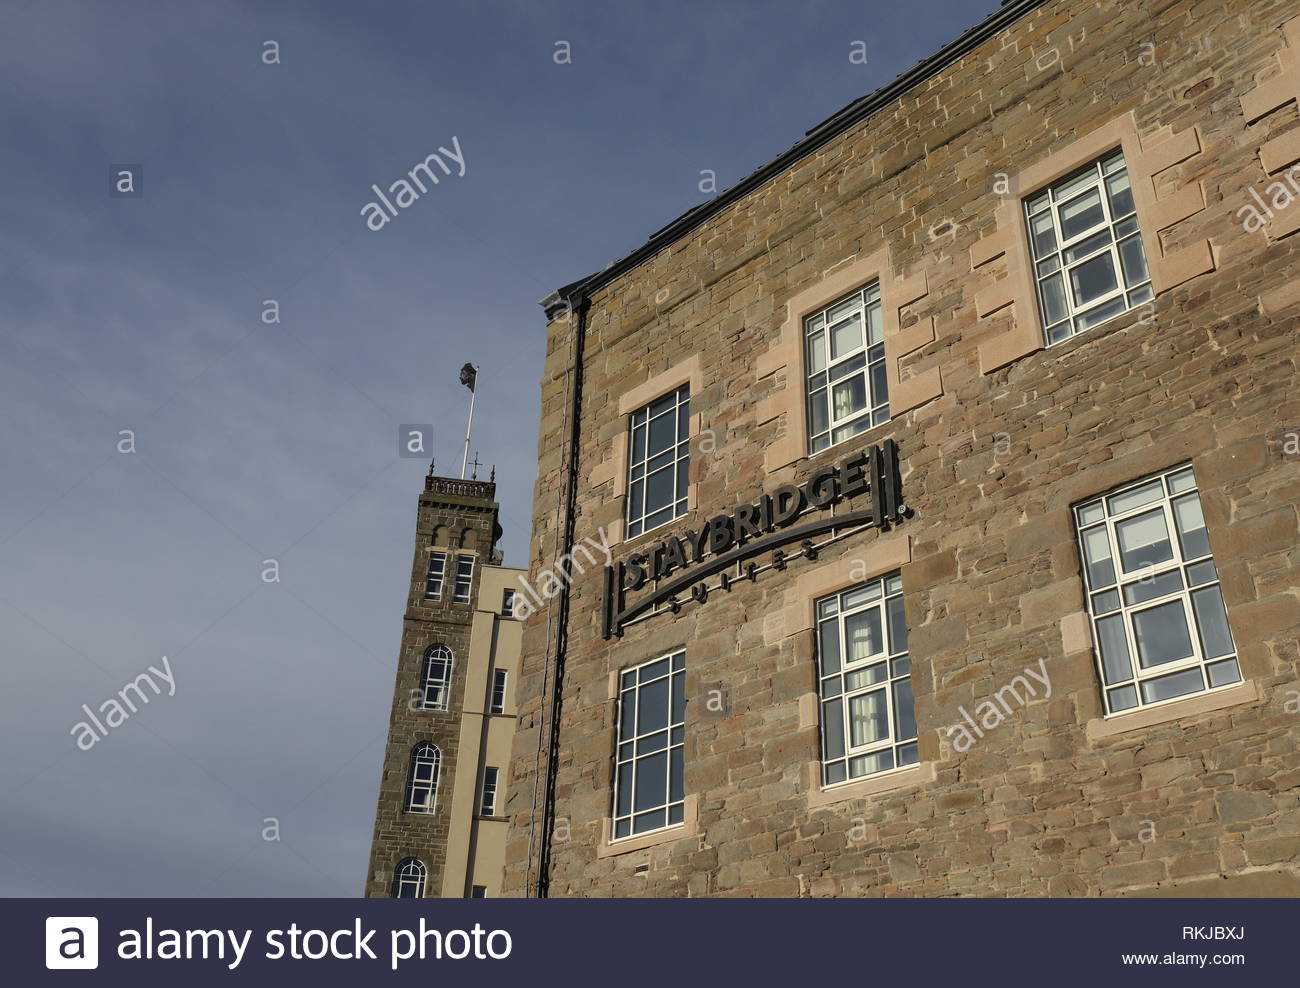 Exterior of Staybridge Suites Dundee Scotland  January 2019 - Stock Image